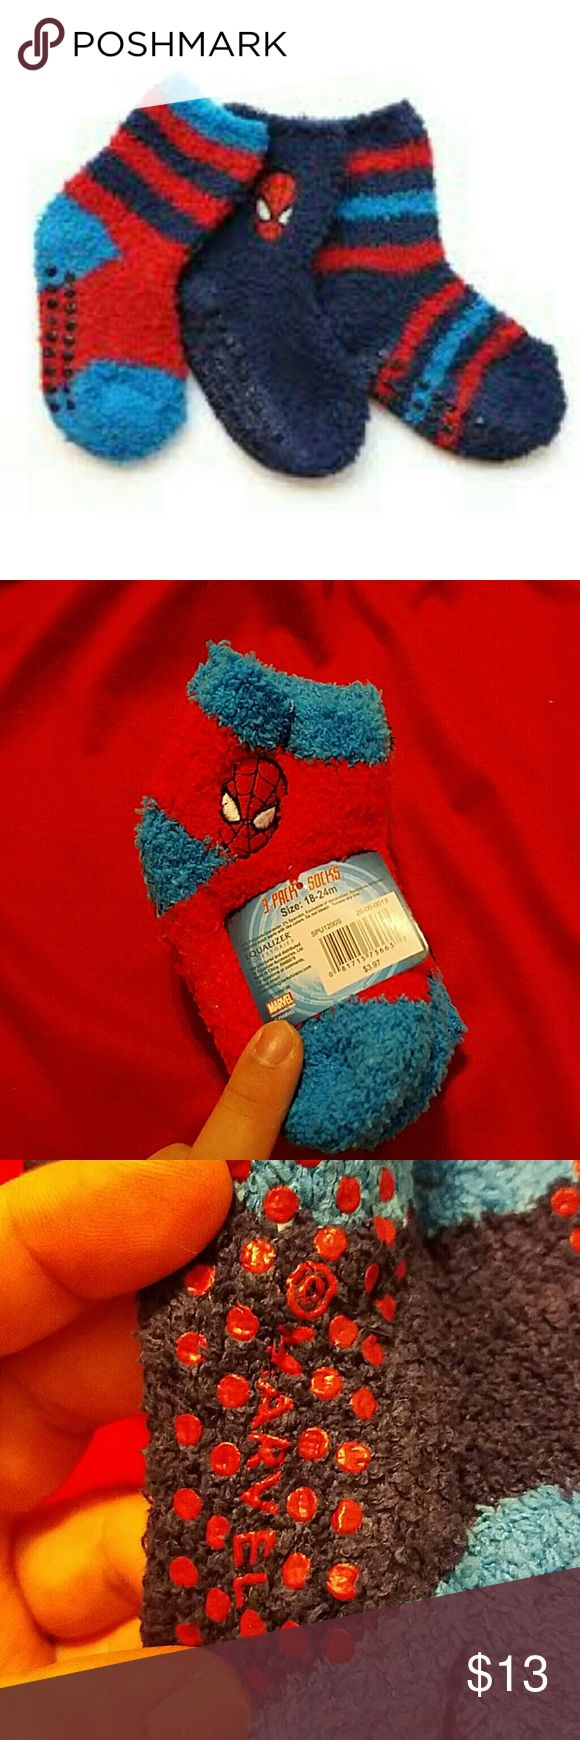 Spiderman socks for baby boys Very fluffy and comfy, these will keep your boys footsies all toasty.theres 3 pairs included and they all have rubbery spots on bottom to make it easy for walking, no slips! You can wear this with your favorite outfit or pair it with a spiderman costume! Accessories Socks & Tights